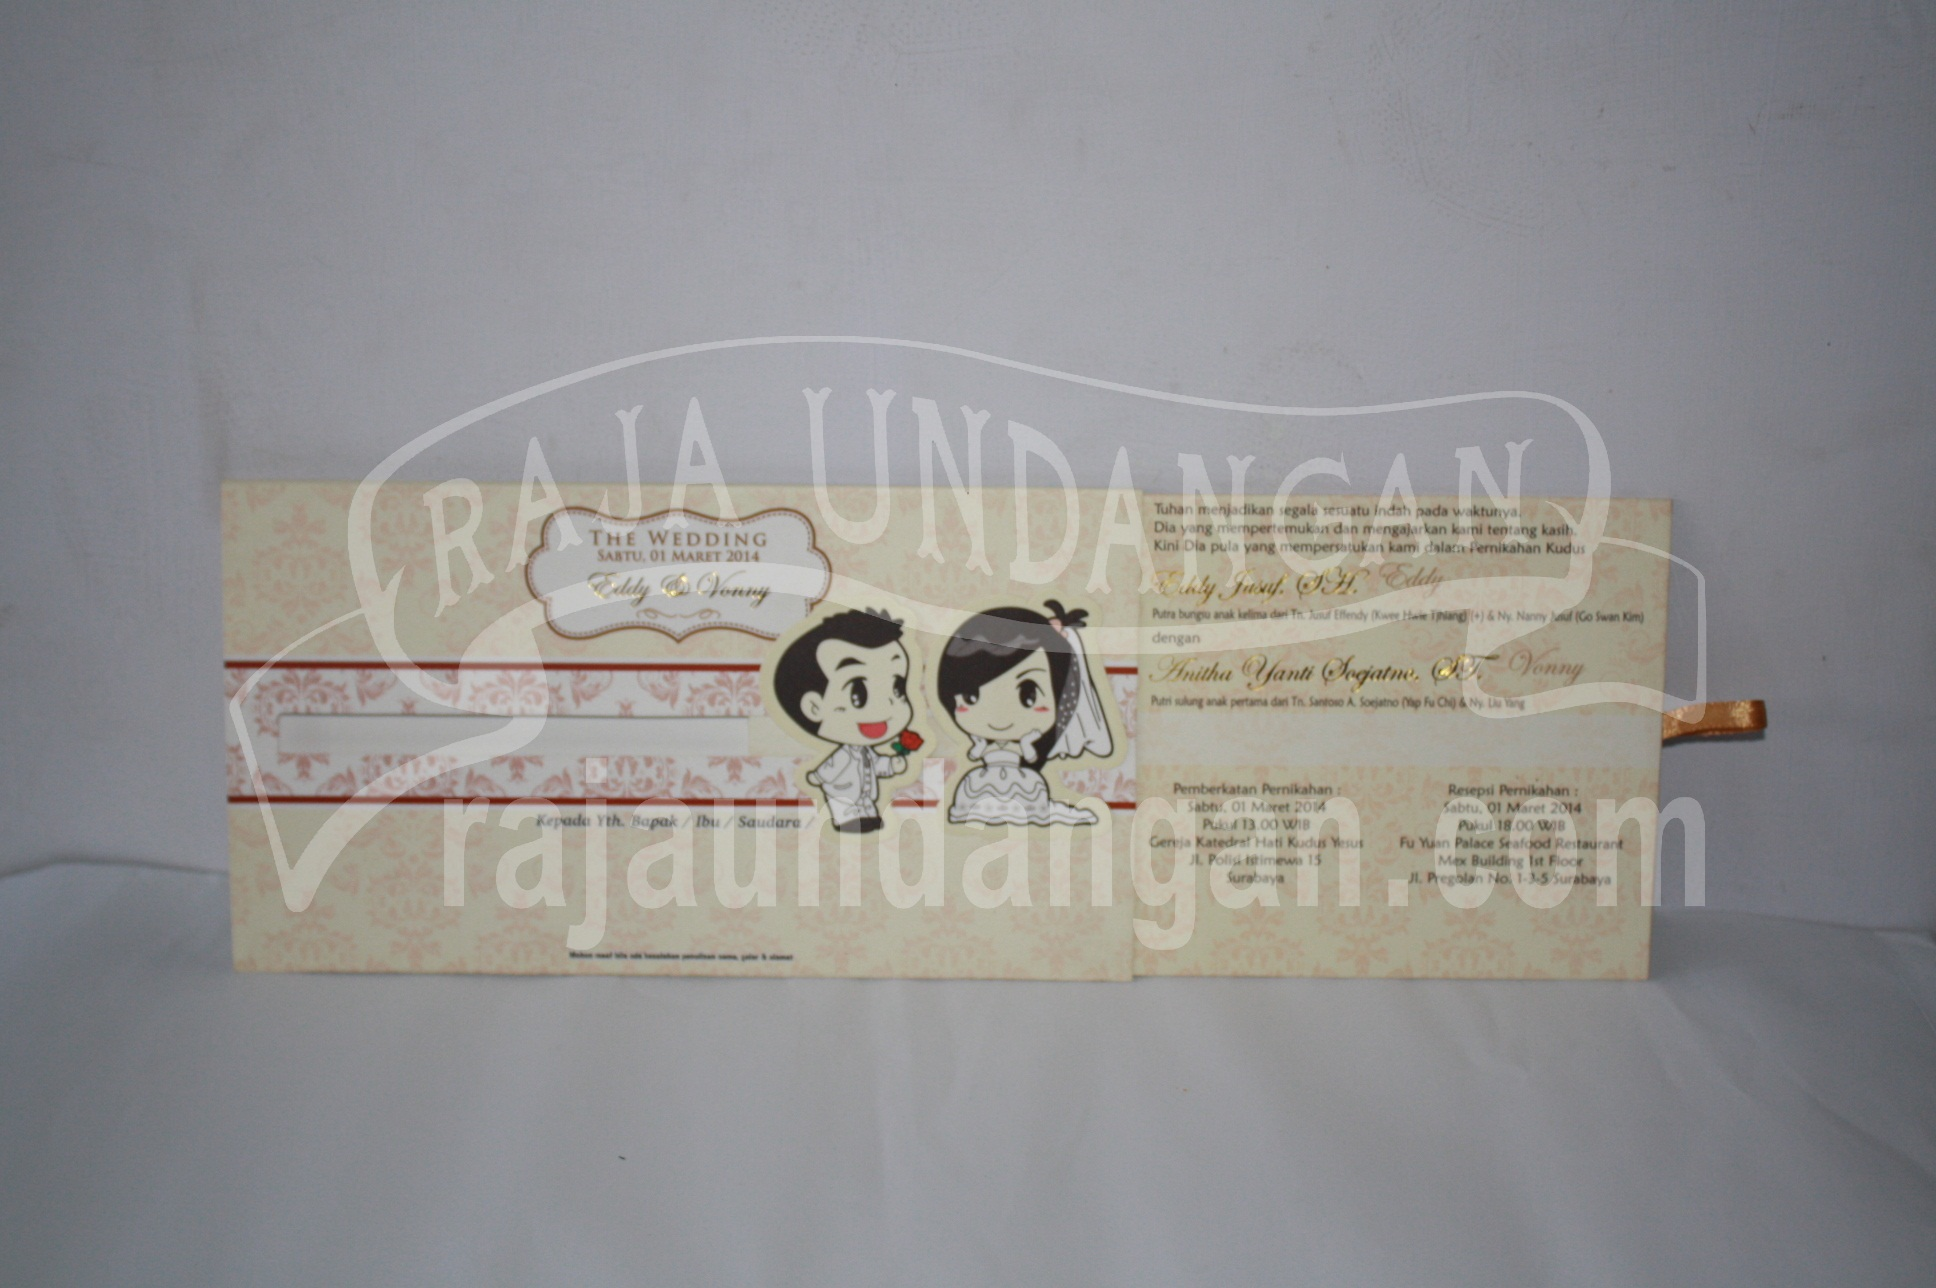 Undangan Pernikahan Hardcover Motif Kartun Geser Eddy dan Vonny EDC 46 2 - Tips Mencetak Wedding Invitations Simple